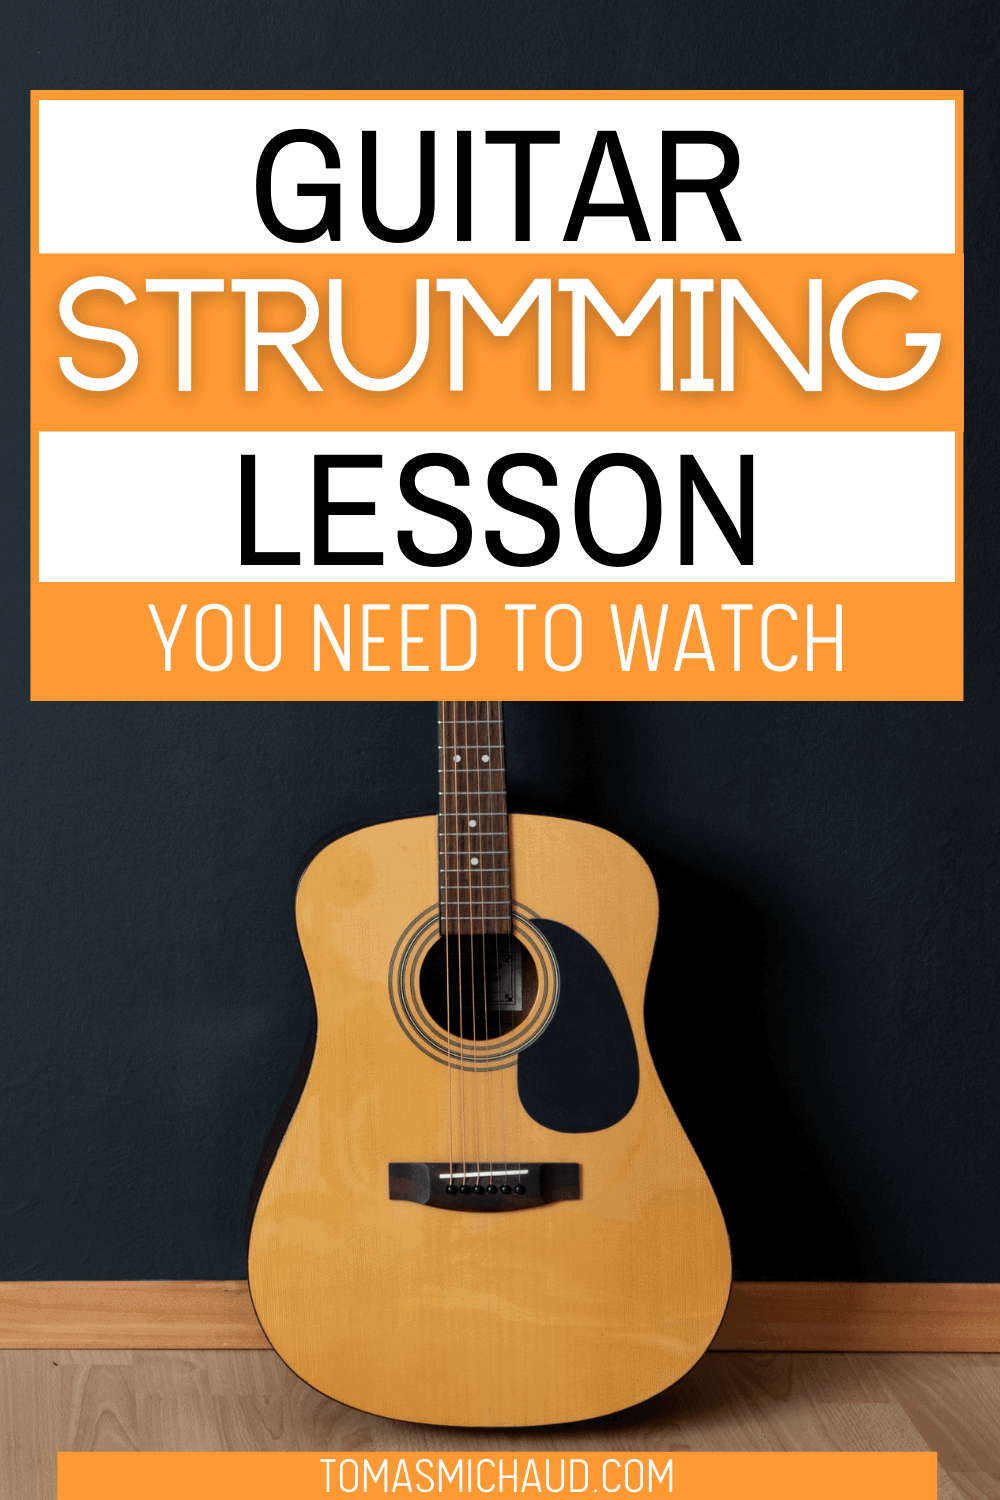 Guitar Strumming Lesson You Need To Watch